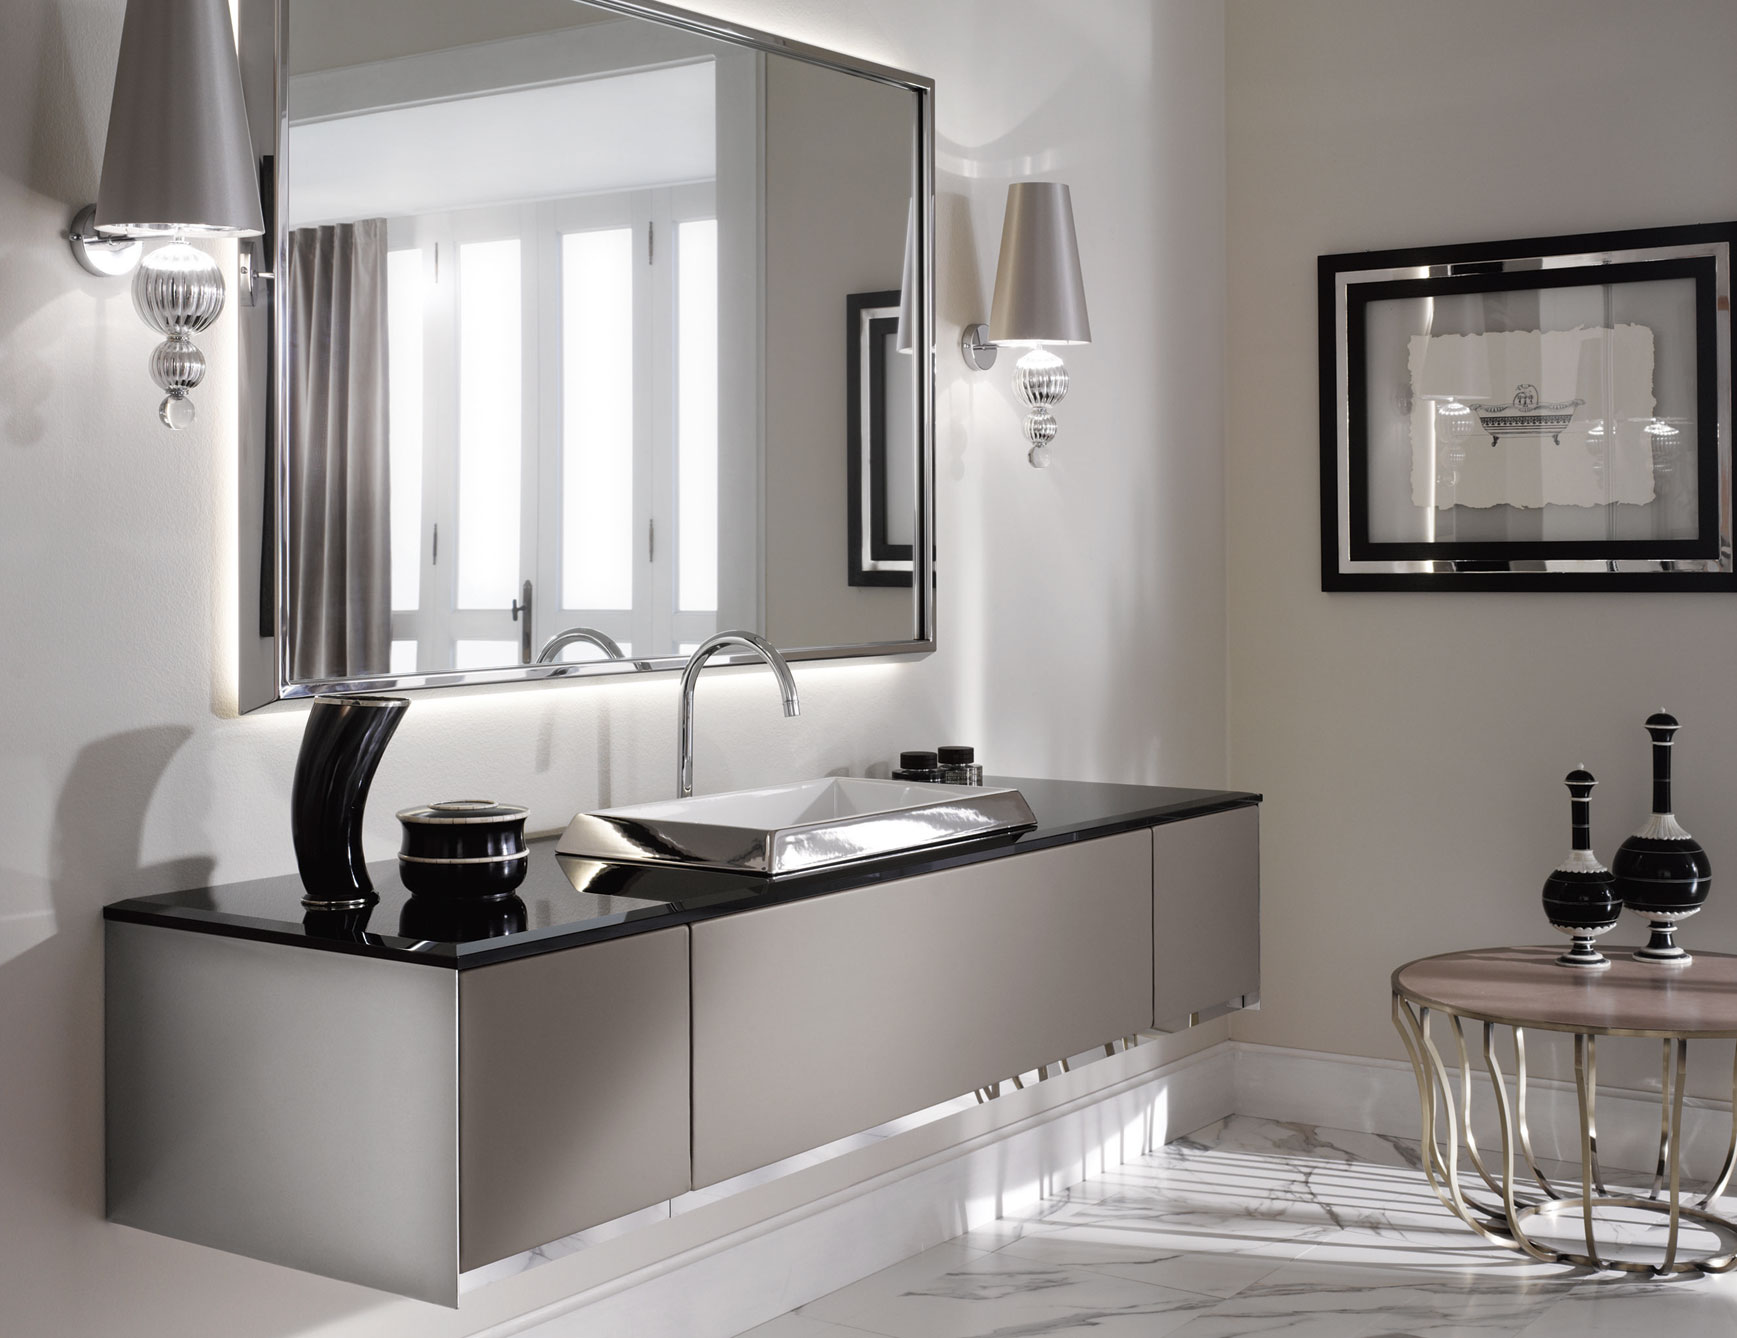 Luxury bathroom vanity from Nella Vetrina